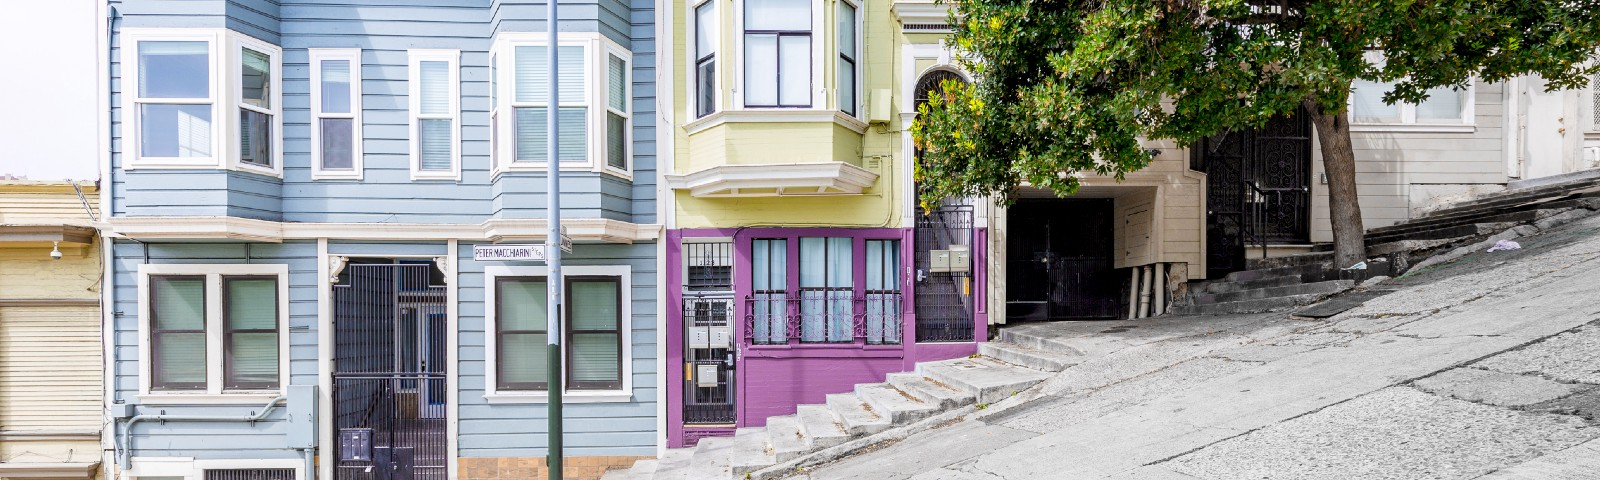 Historic colorful buildings along one of San Francisco's steepest streets near the Telegraph Hill residential area.